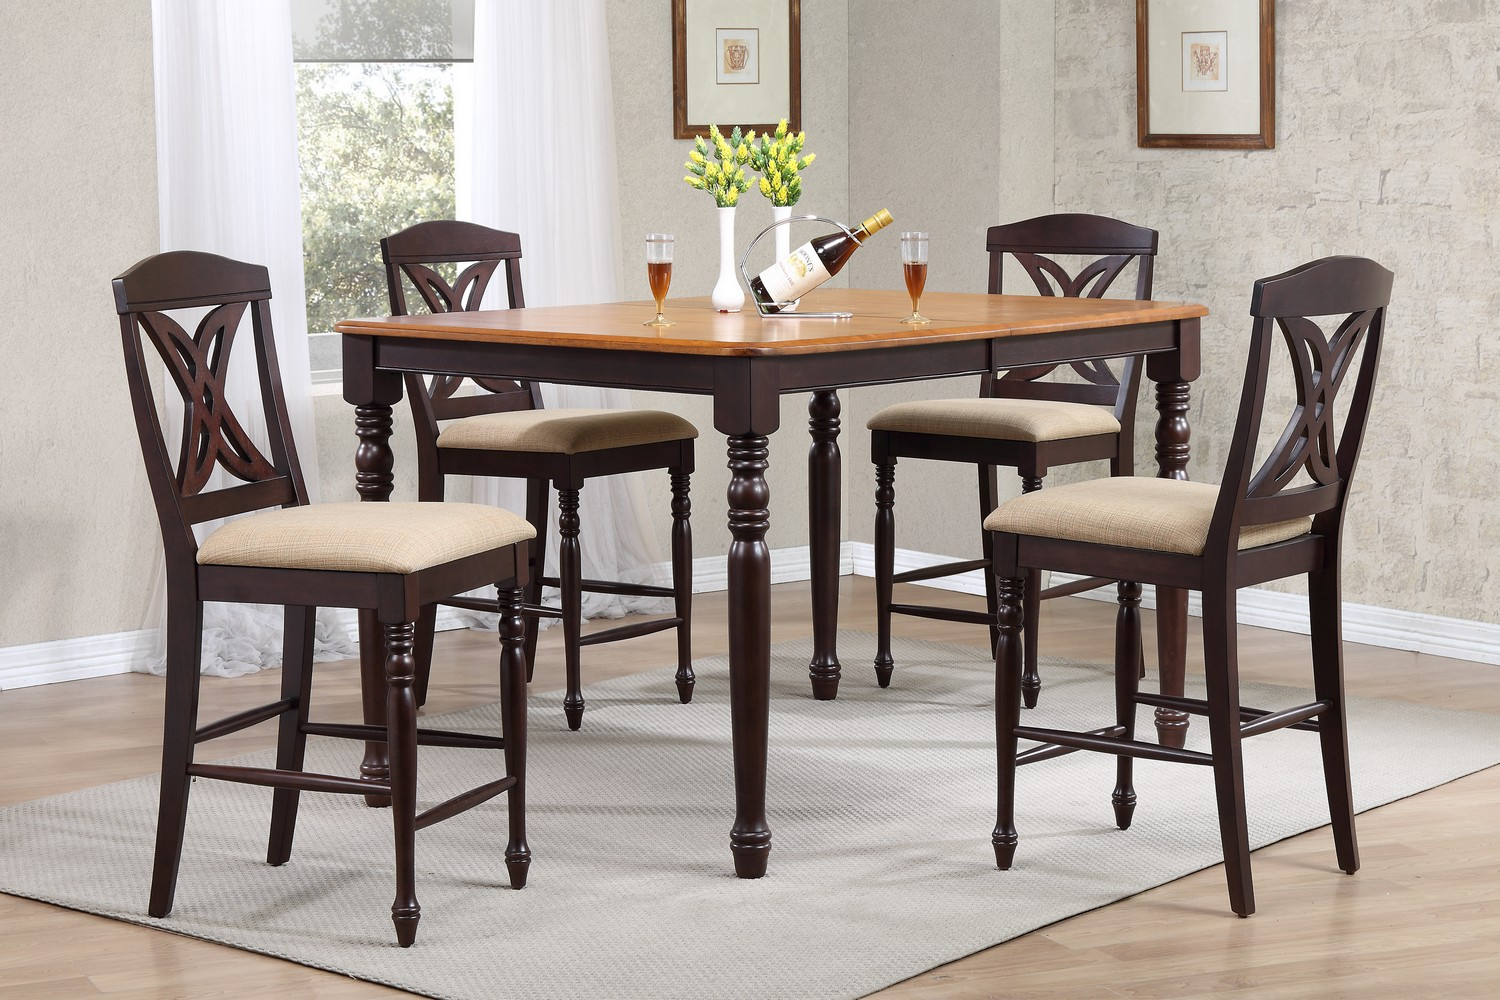 Iconic Furniture RT78 Whiskey/Mocha Butterfly Back Counter Height Dining Set